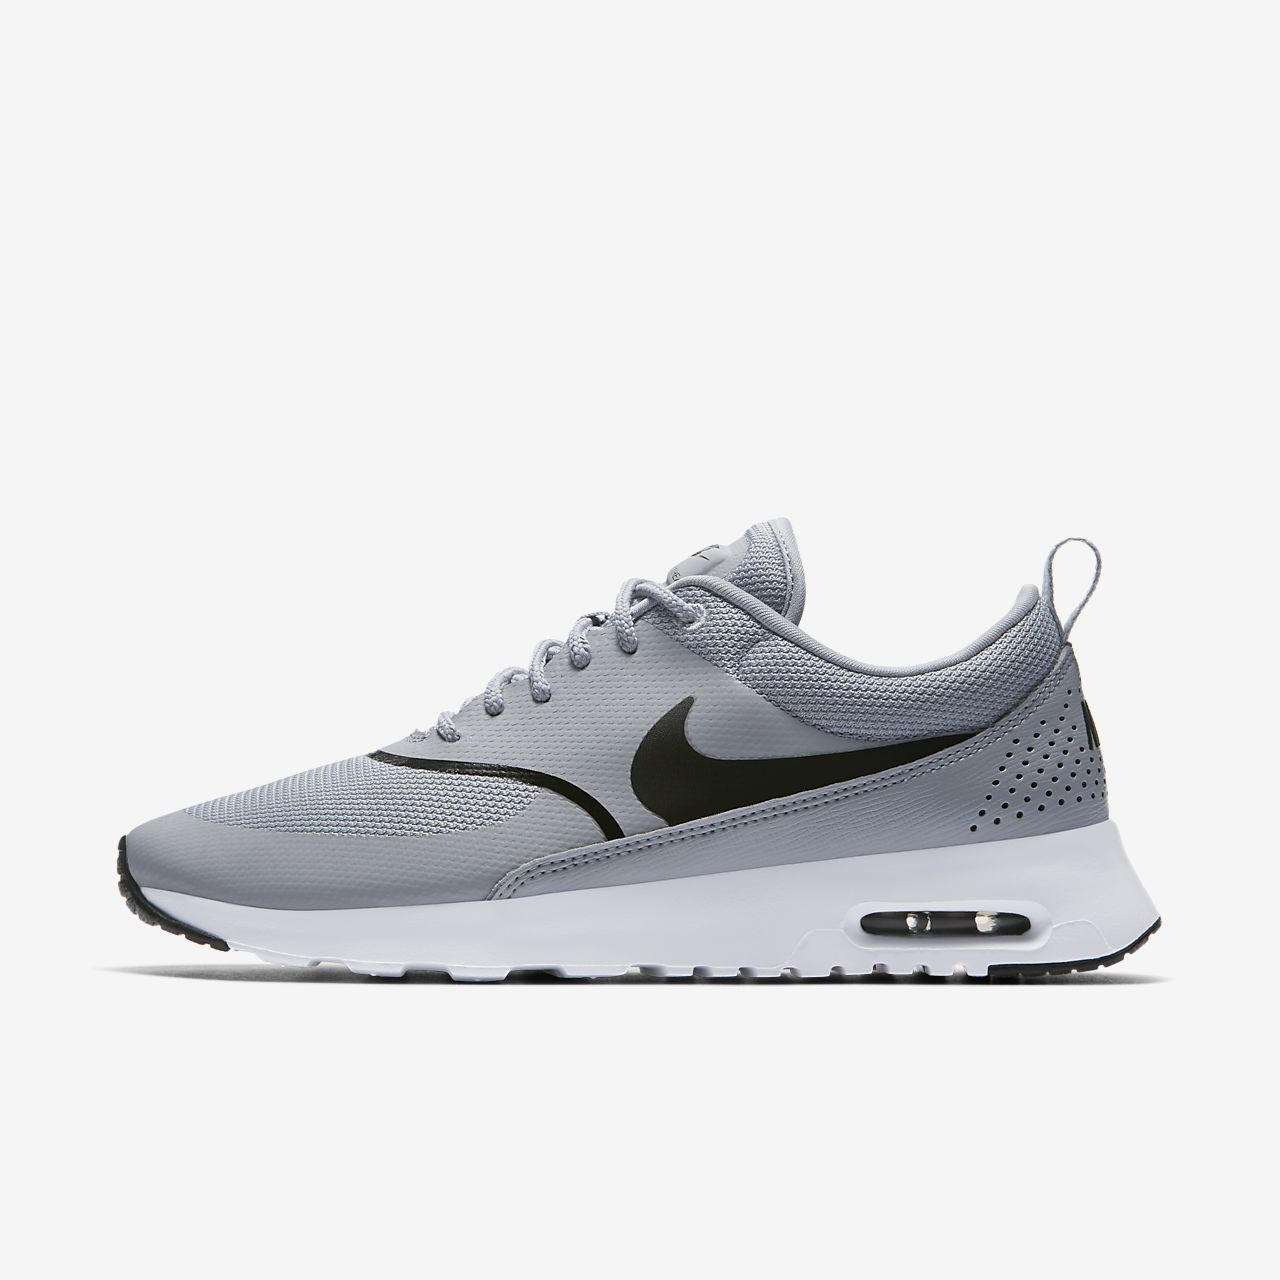 reputable site 90865 7a3f7 ... Nike Air Max Thea Women s Shoe